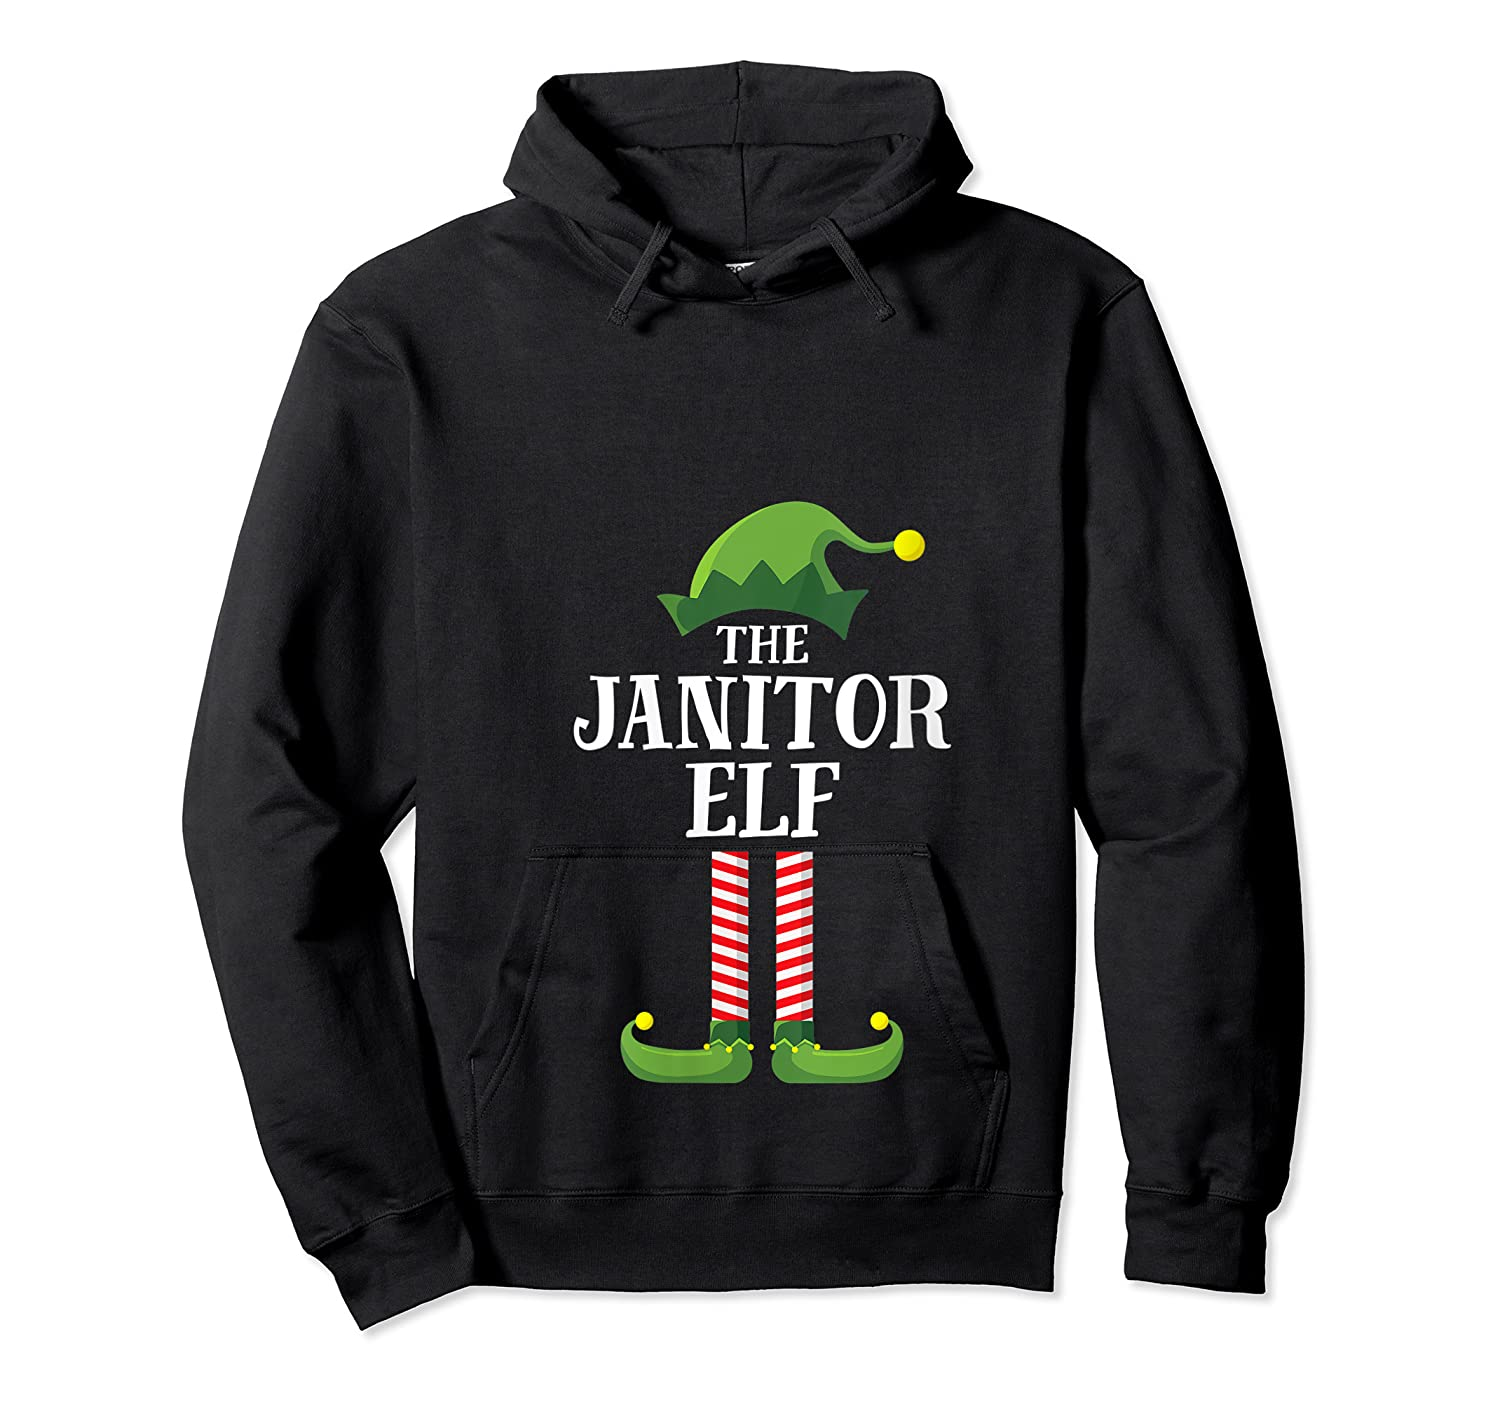 Janitor Elf Matching Family Group Christmas Party Pajama T-shirt Unisex Pullover Hoodie